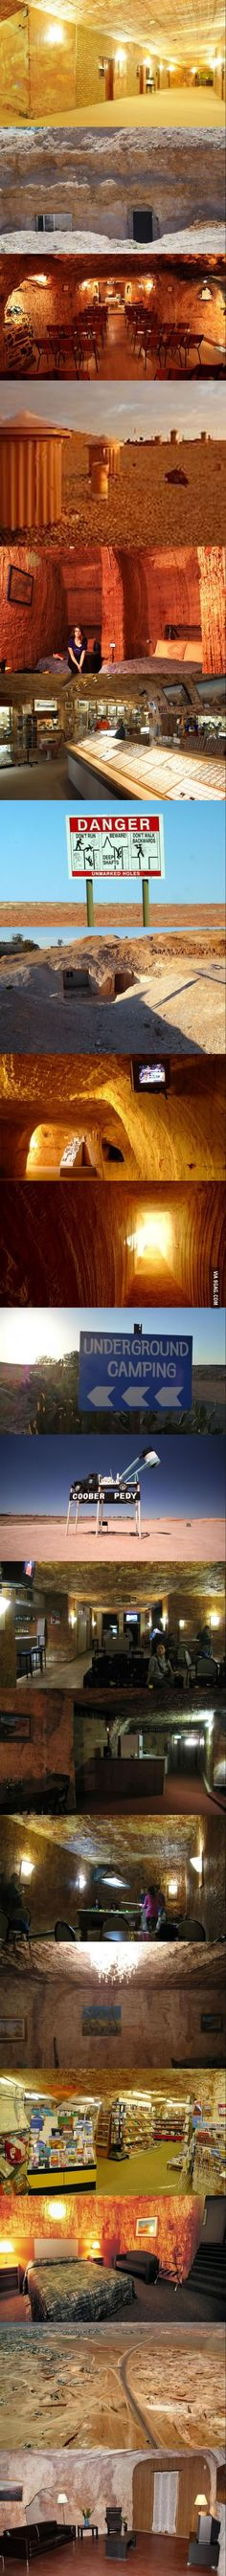 "Australians have built the underground town of ""Coober Pedy"" to escape extreme…"